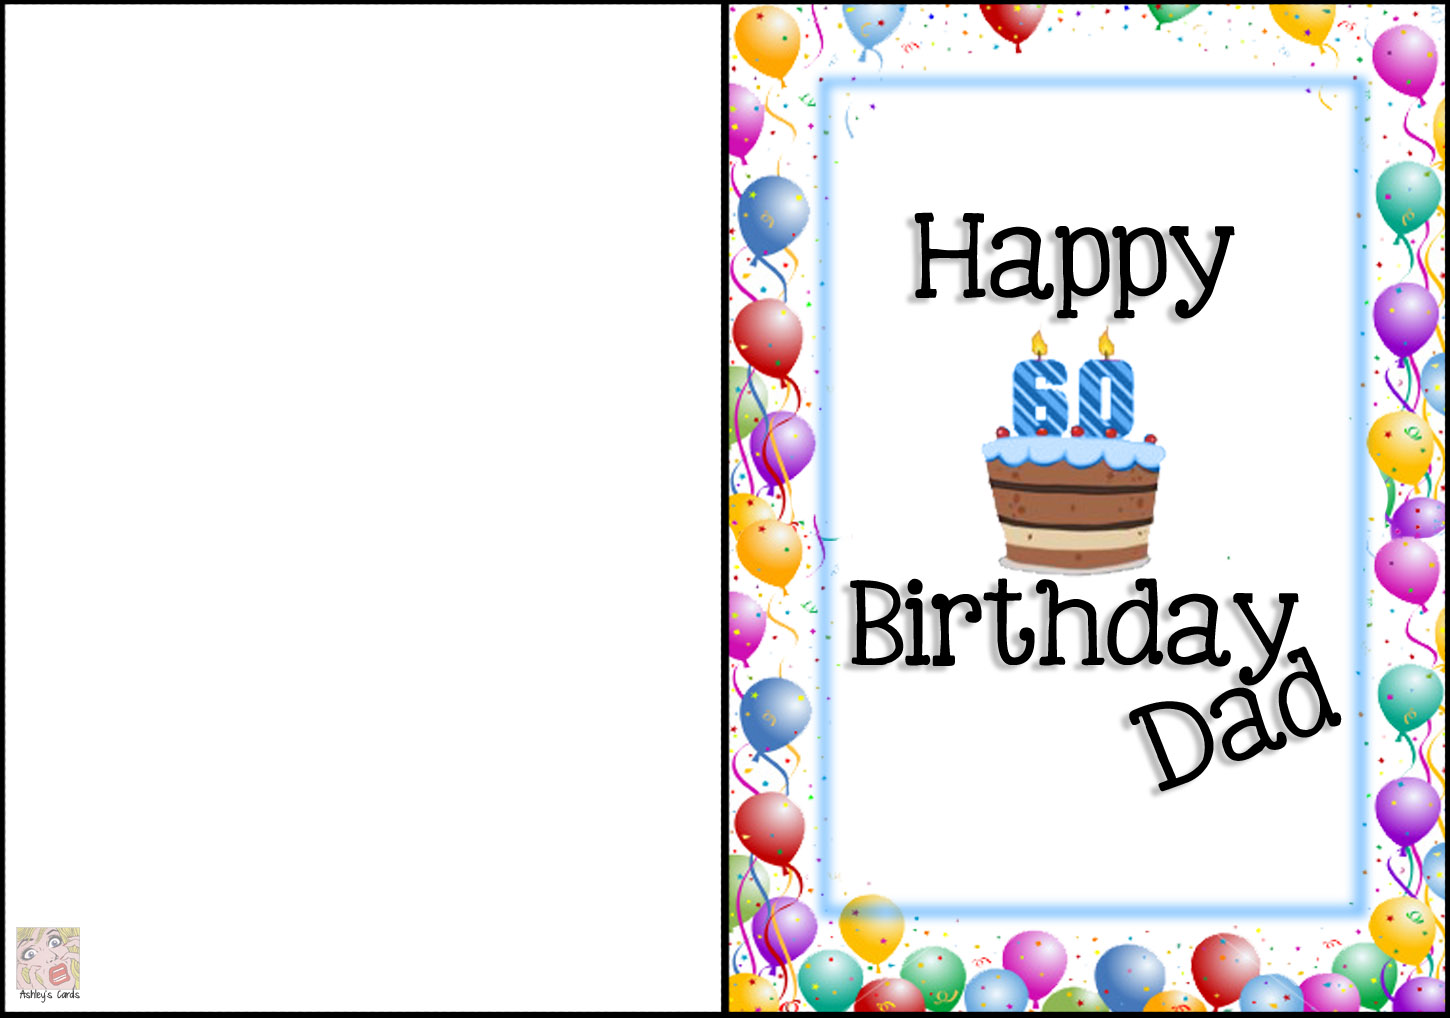 printable birthday borders ; happy-birthday-dad-cards-printable-balloons-borders-image-design-colorful-fun-greetings-pictures-printable-birthday-cards-for-dad